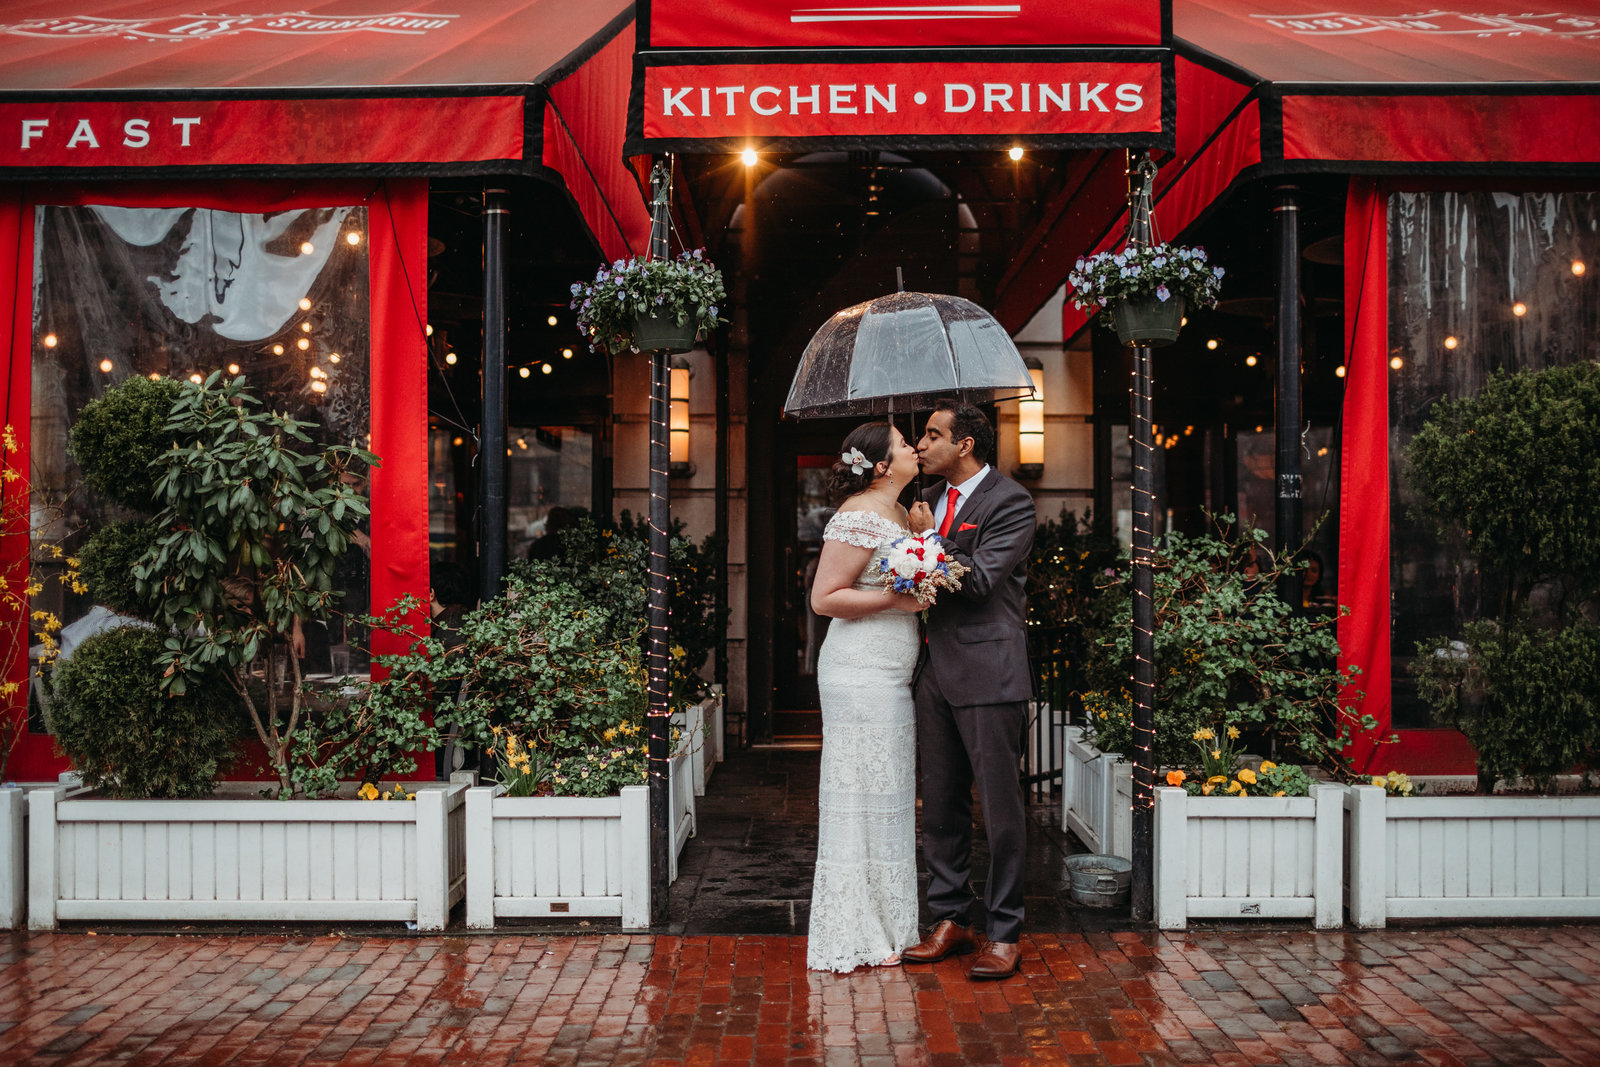 couple stands under an umbrella in the rain after eloping